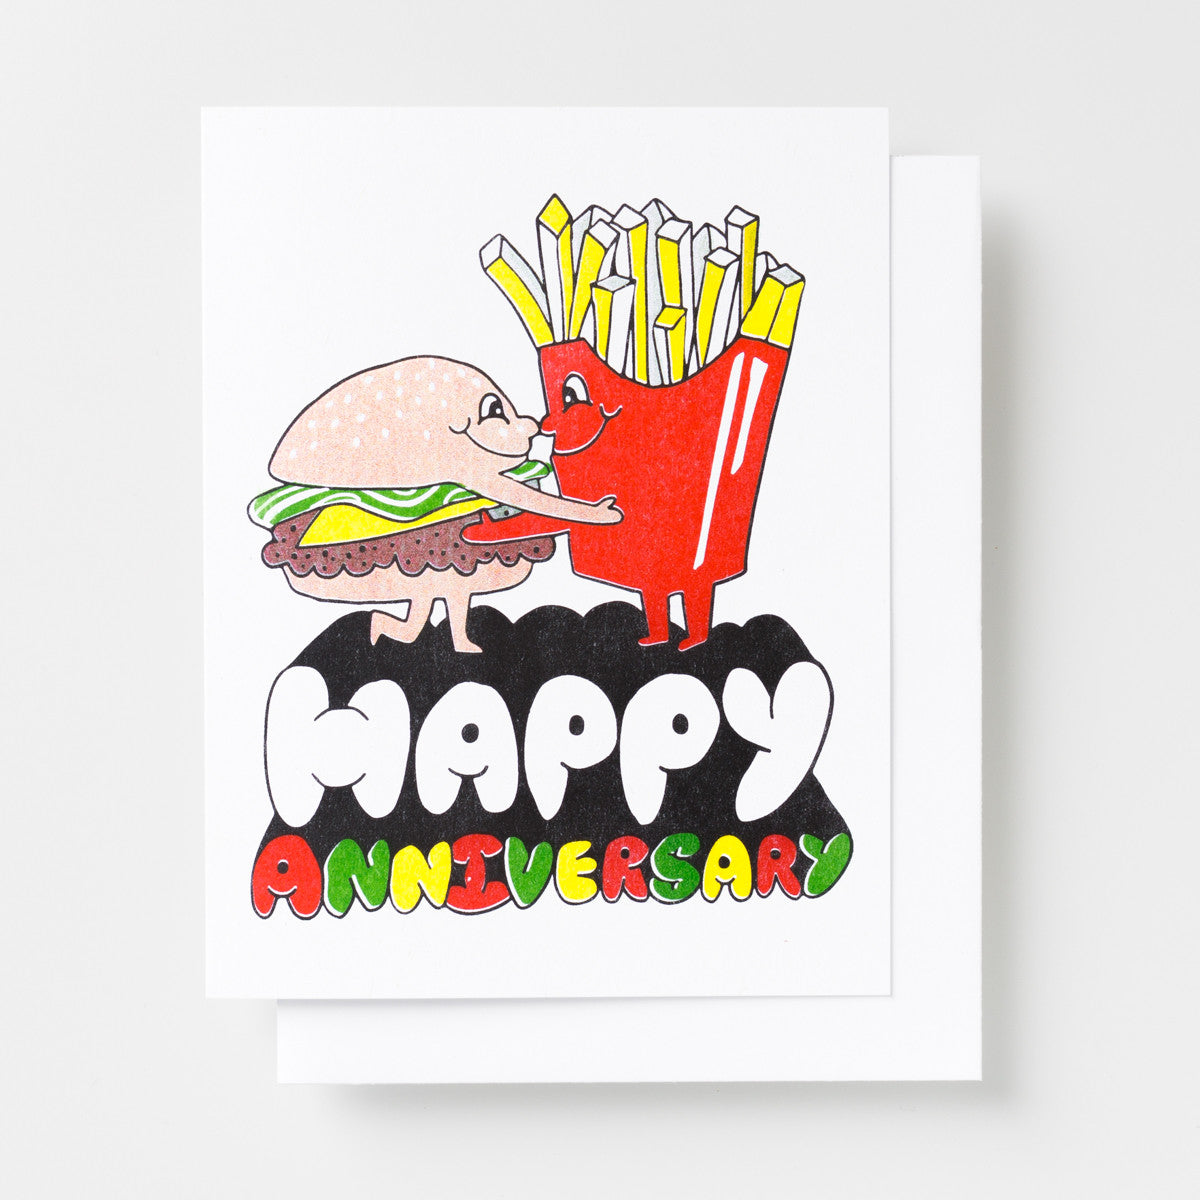 Happy Anniversary risograph greeting card featuring a hamburger and french fry hug